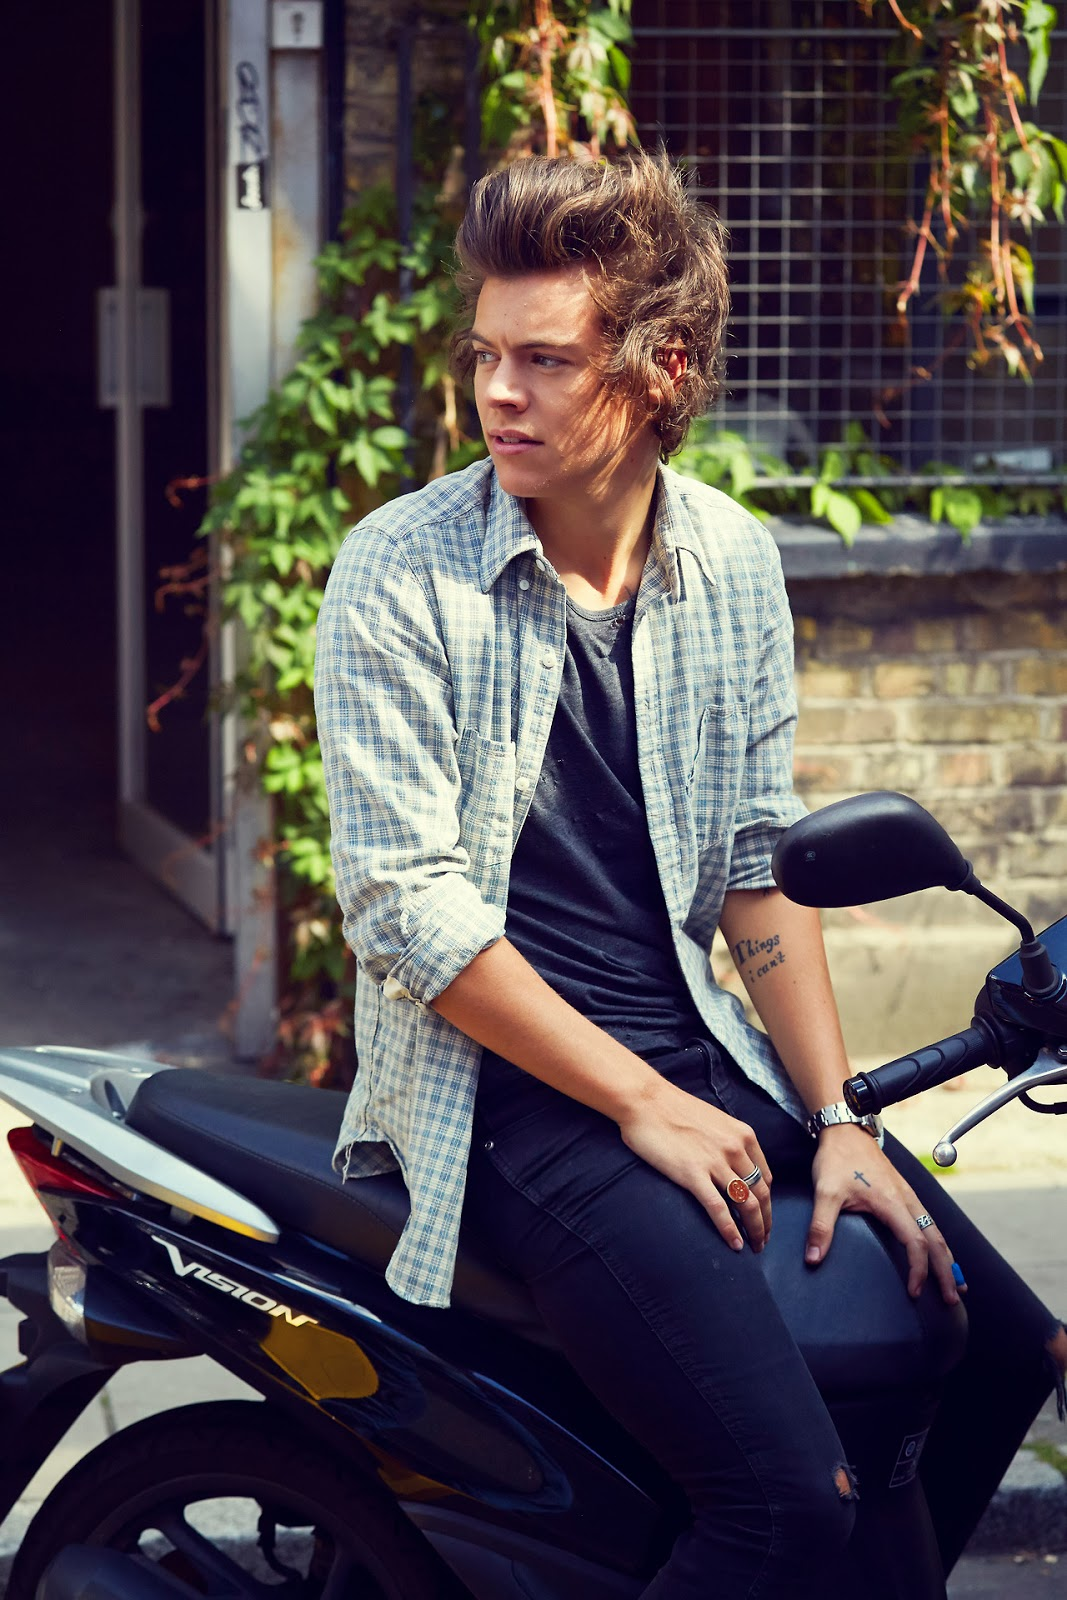 one direction,1d, harry styles, midnight memories, photoshoot, servizio fotografico, beautiful photo of harry, bella foto di harry